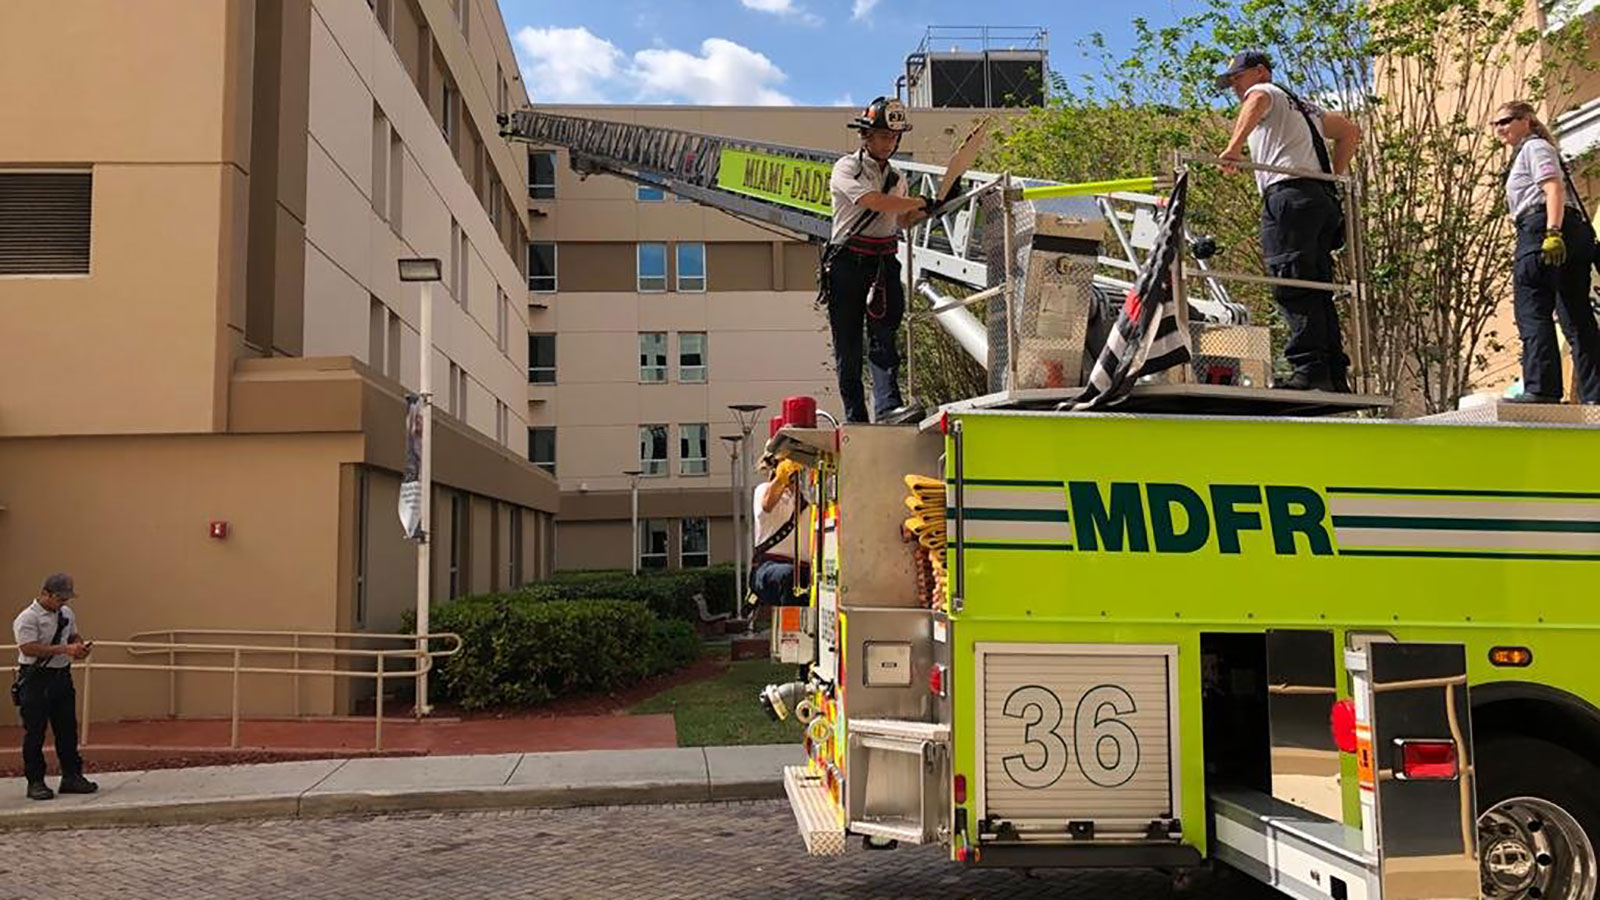 A Florida fire crew used a ladder to surprise a firefighter with coronavirus at his hospital window